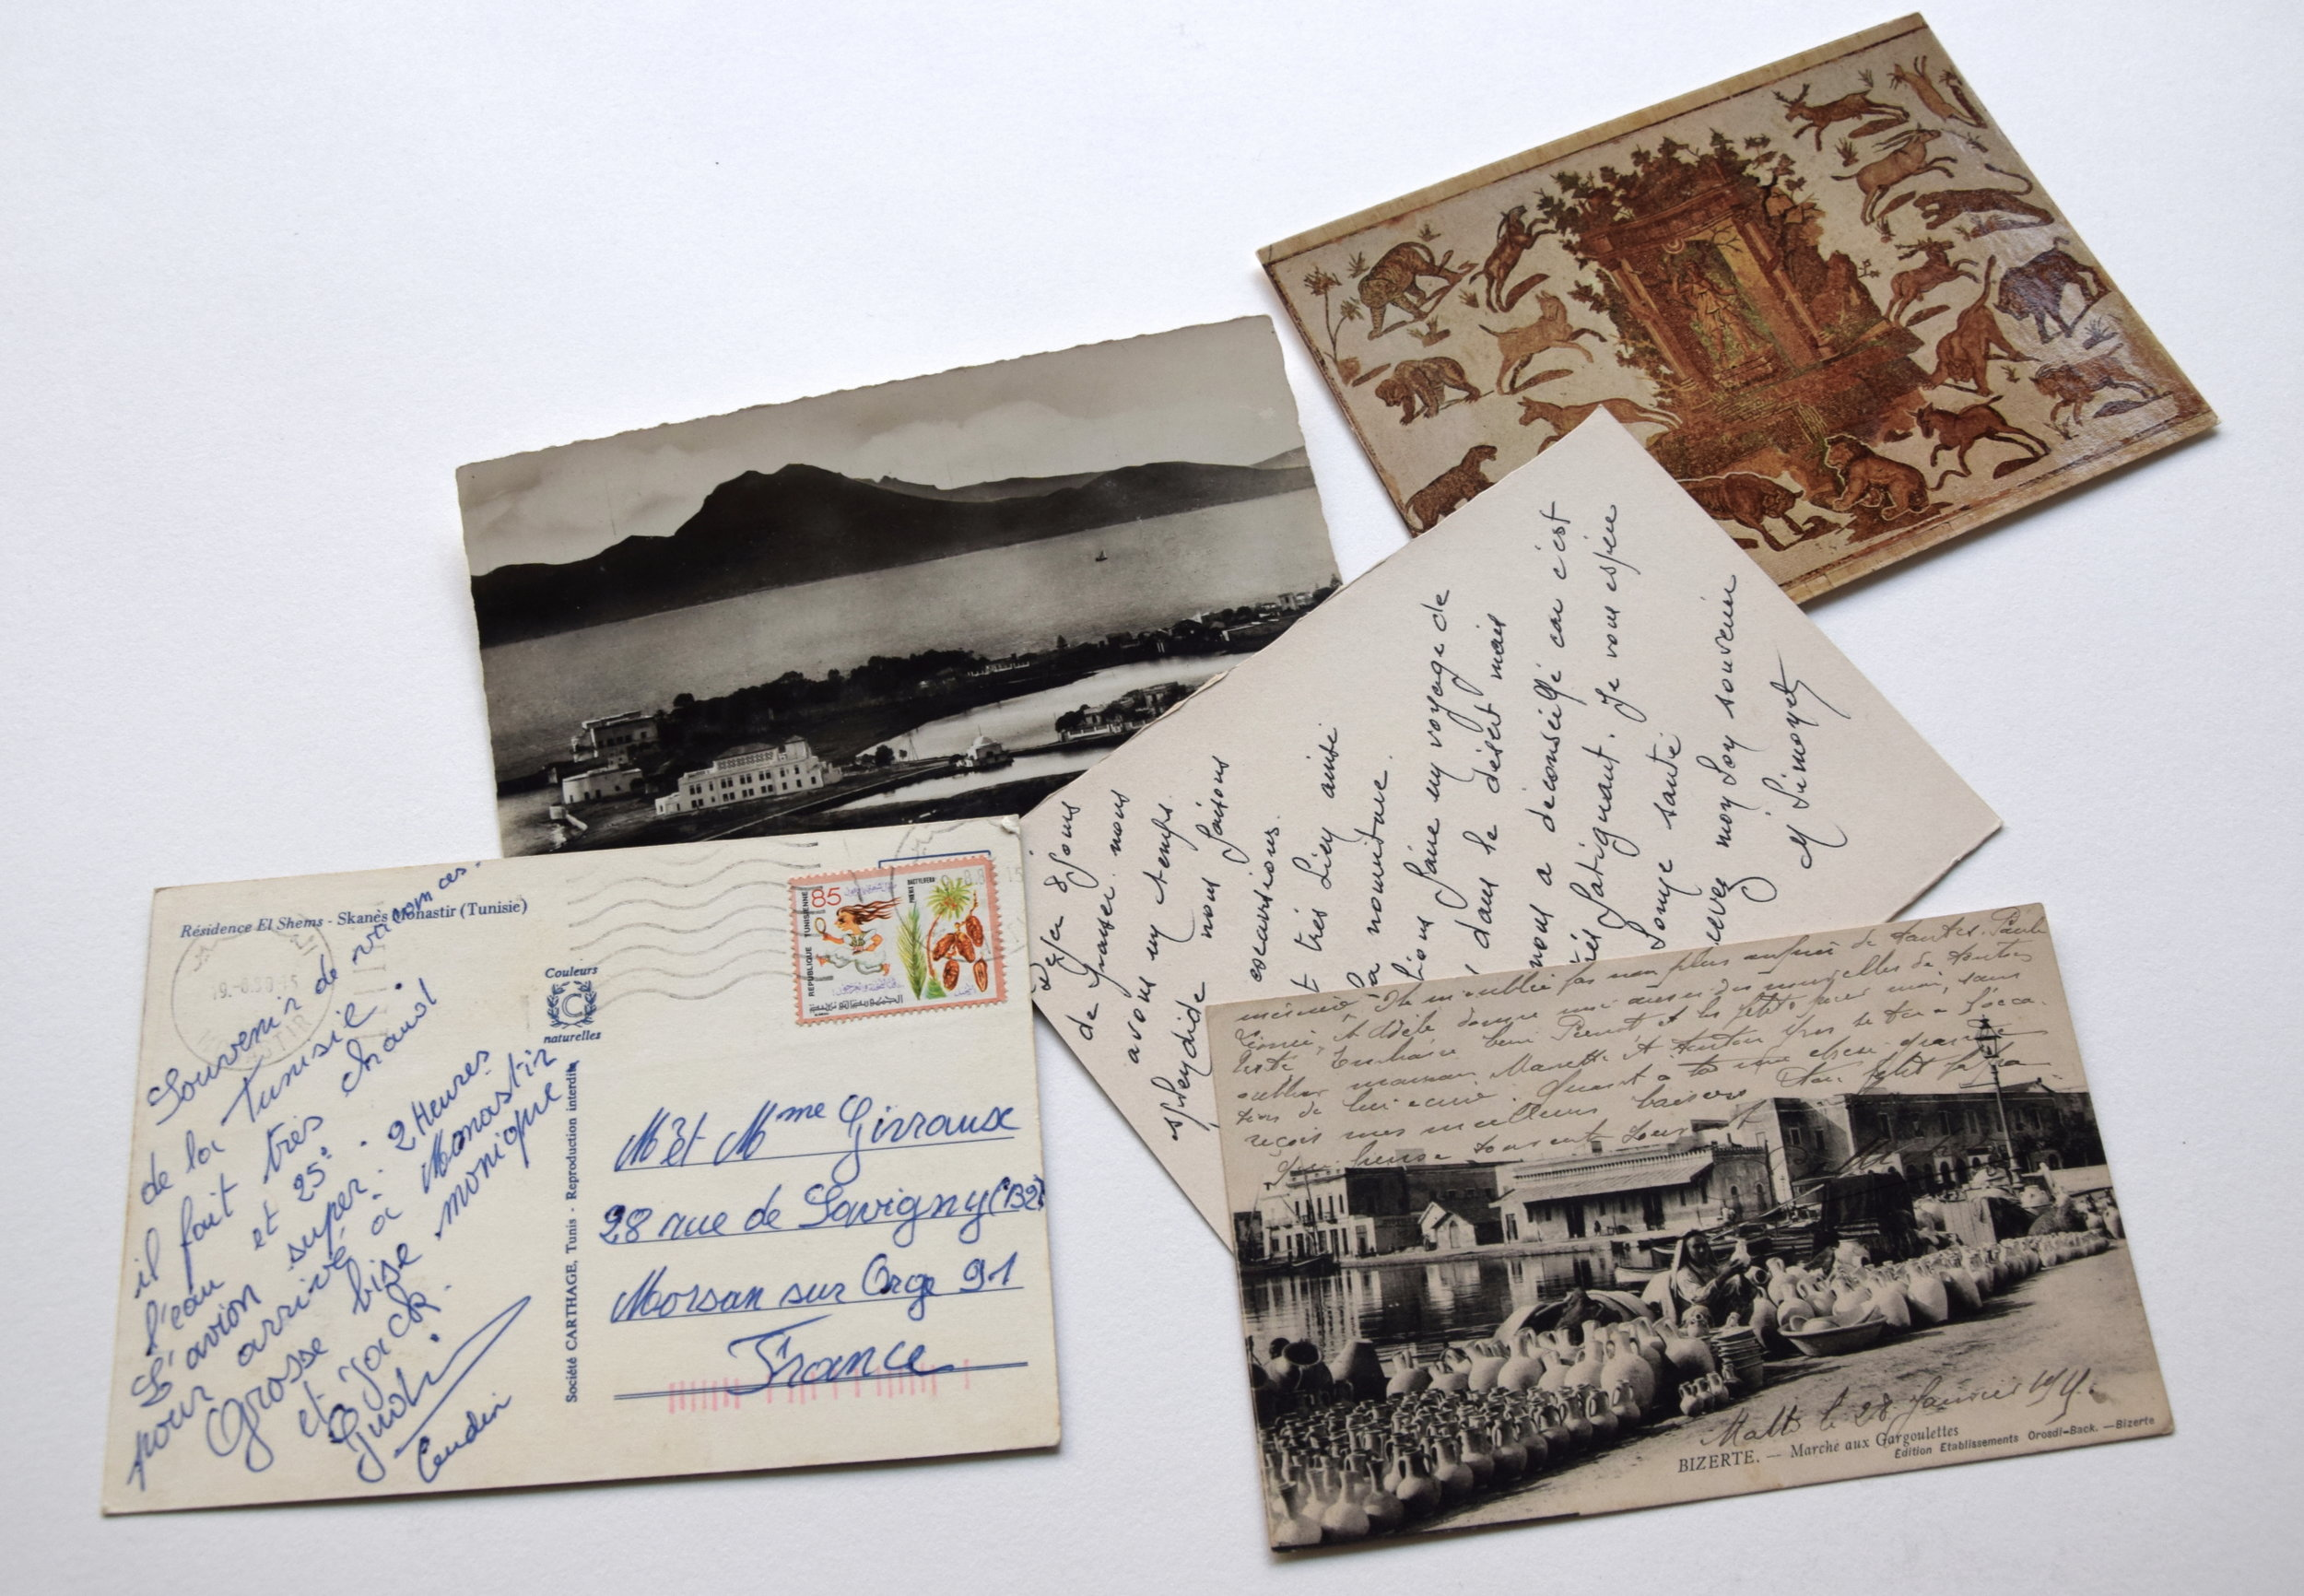 Postcards from the artist's studio.